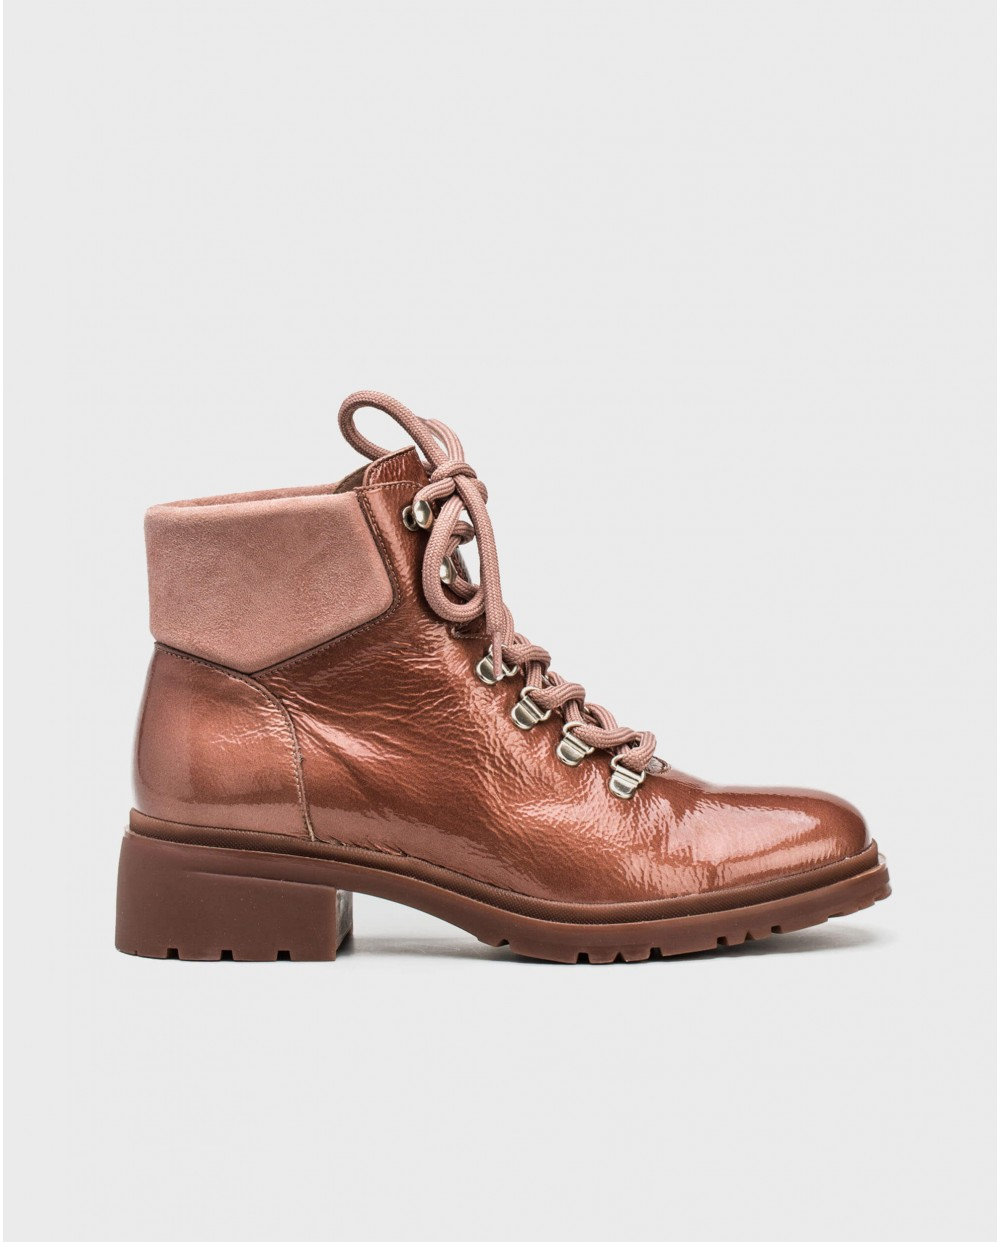 Wonders-Outlet Women-Leather ankle boots mix